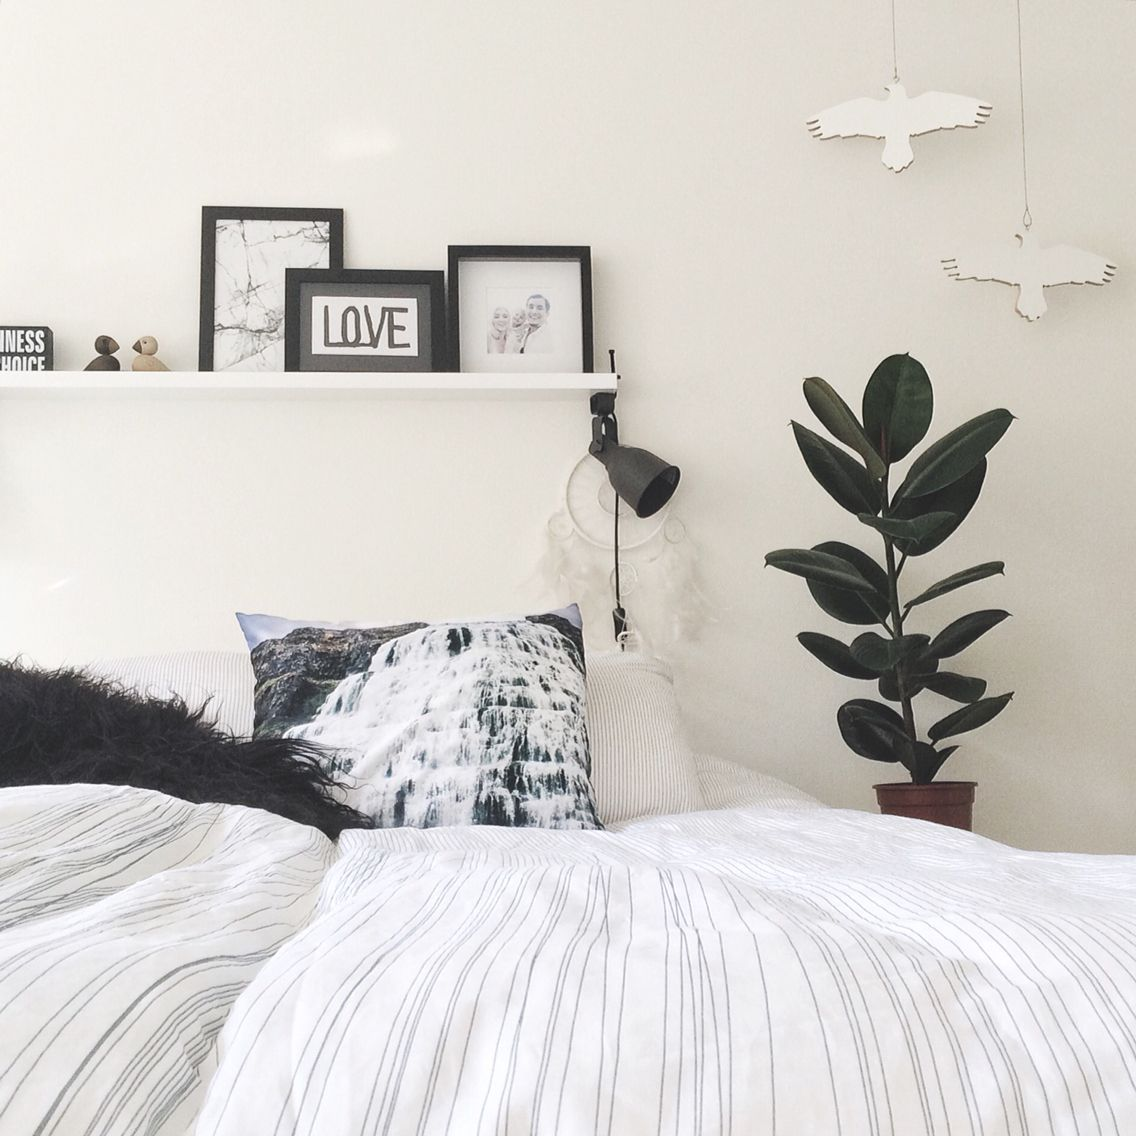 Bed Without Headboard, Make